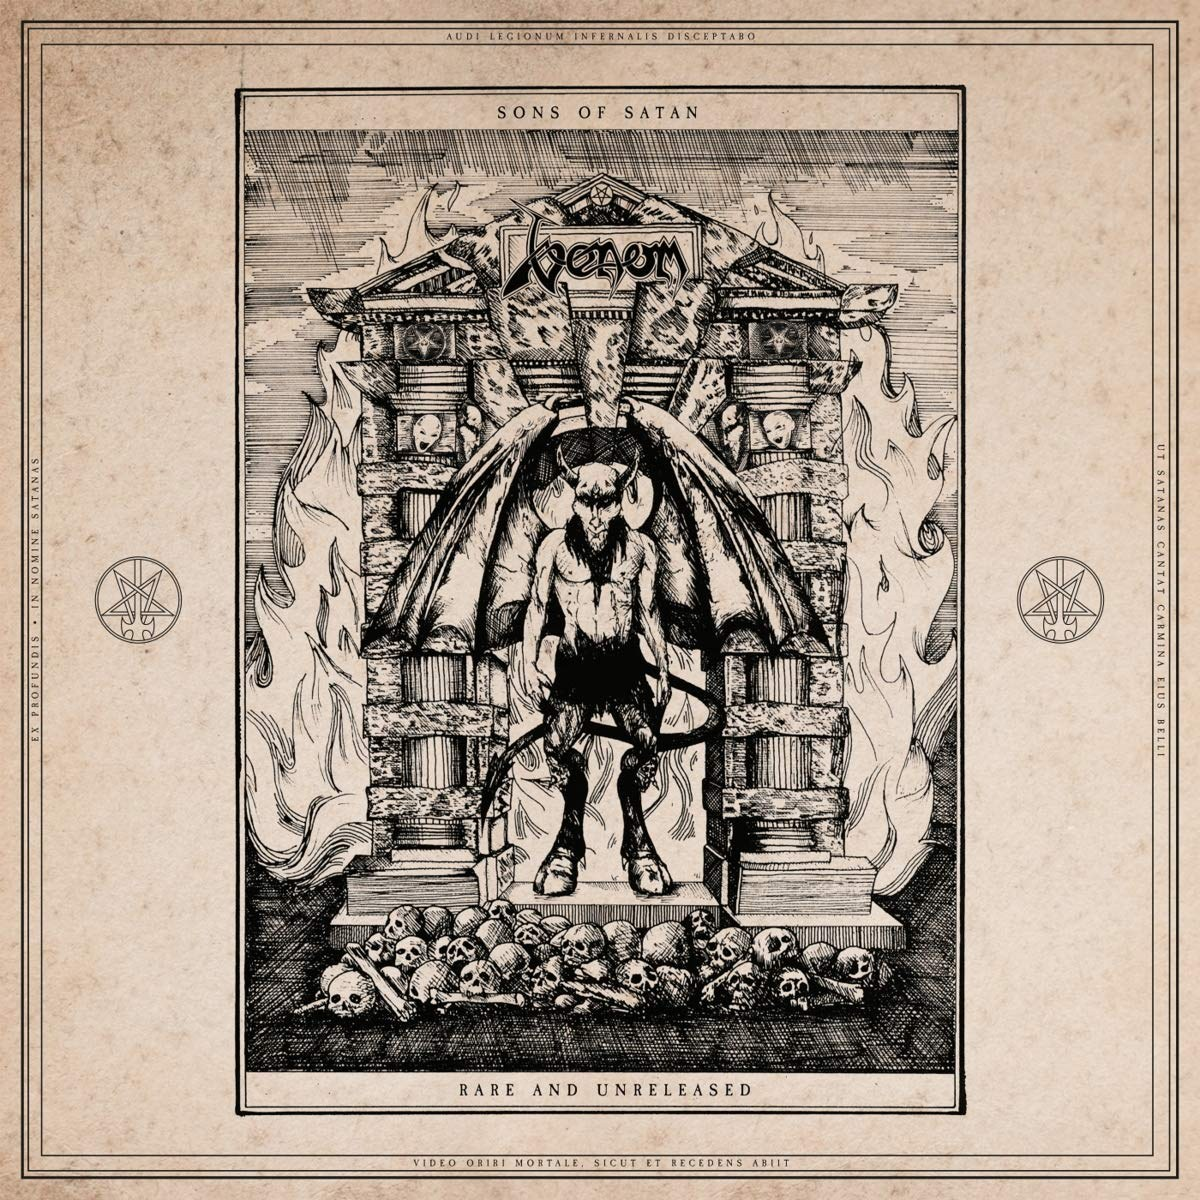 Review for Venom - Sons of Satan (Rare and Unreleased)